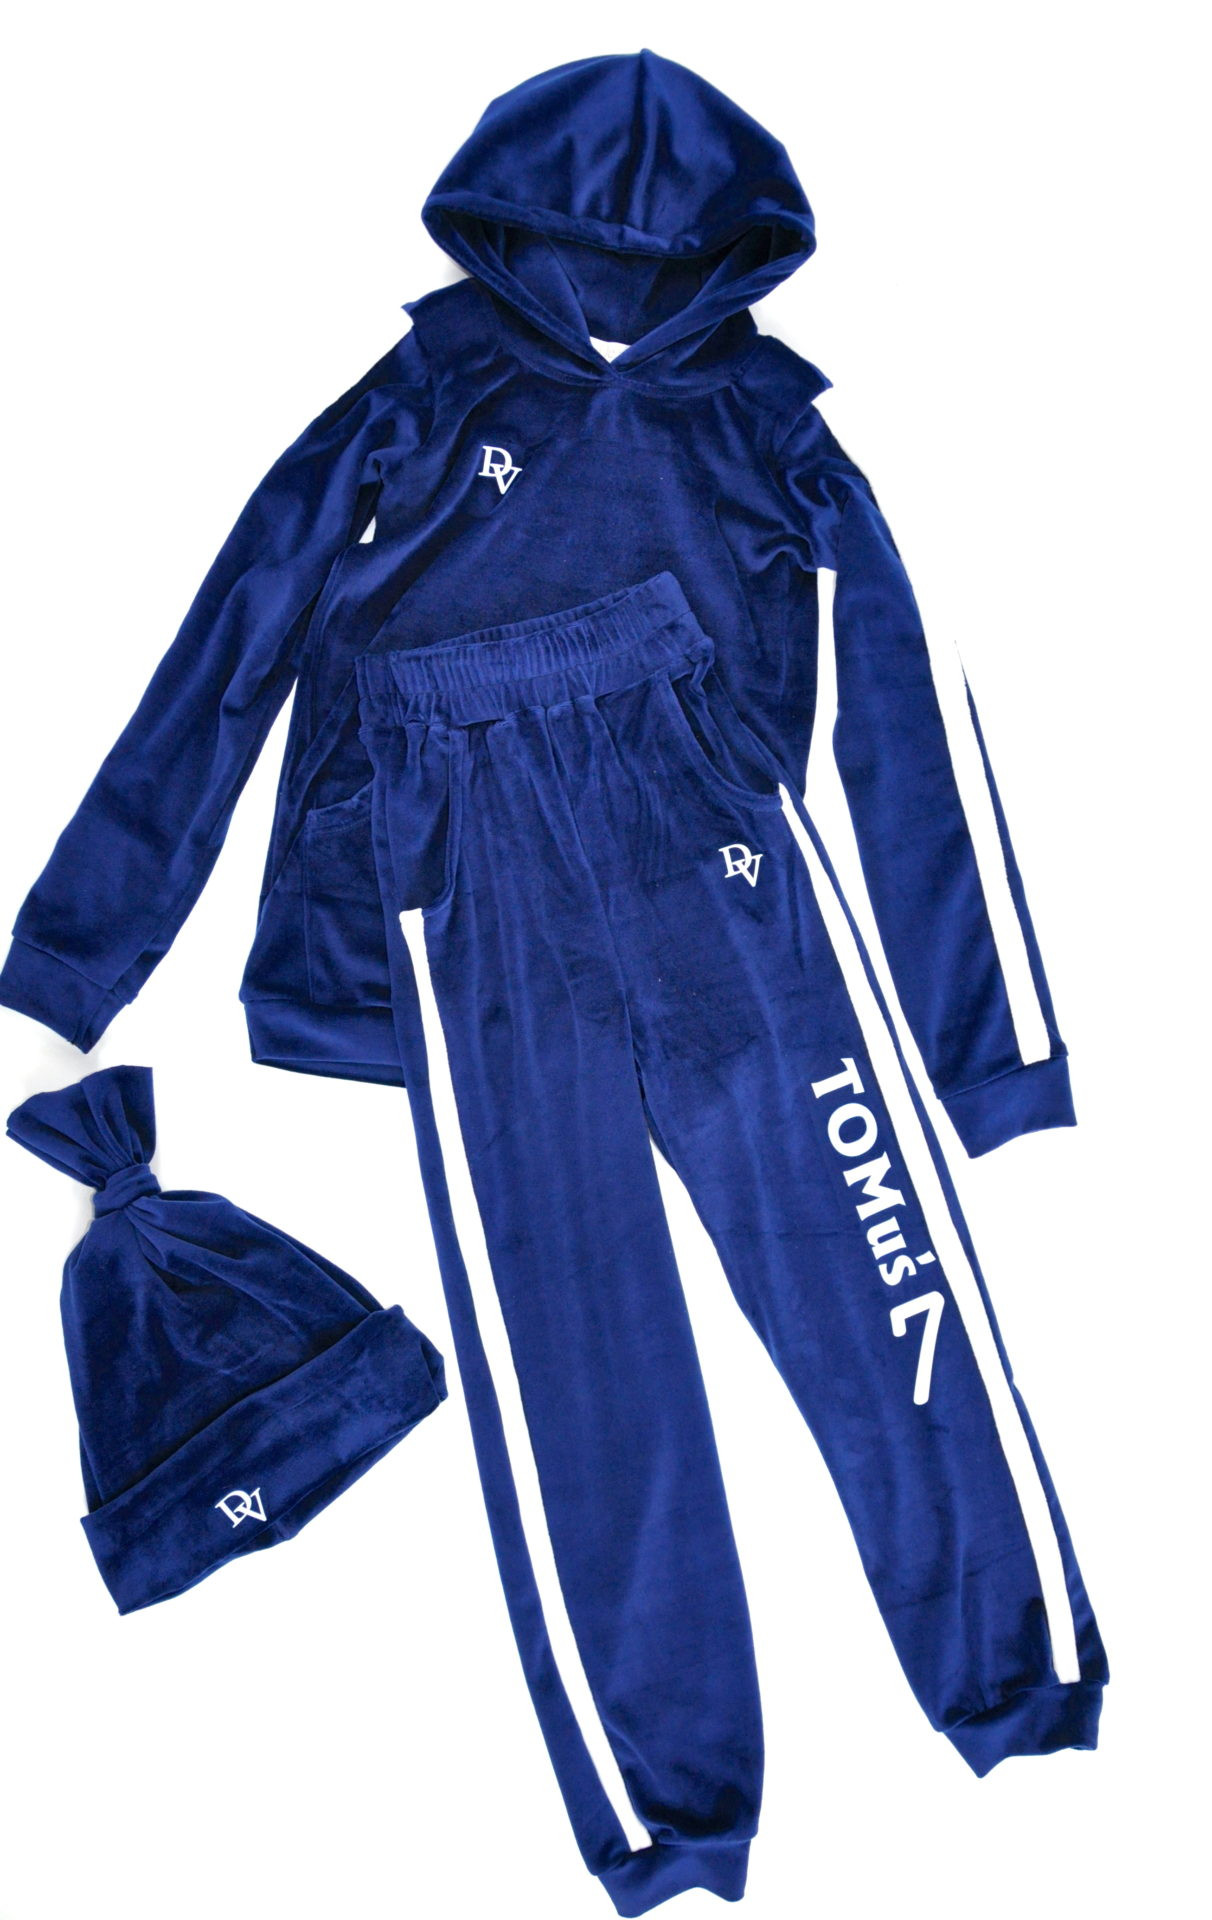 Personalized tracksuit with your name! Free cap!